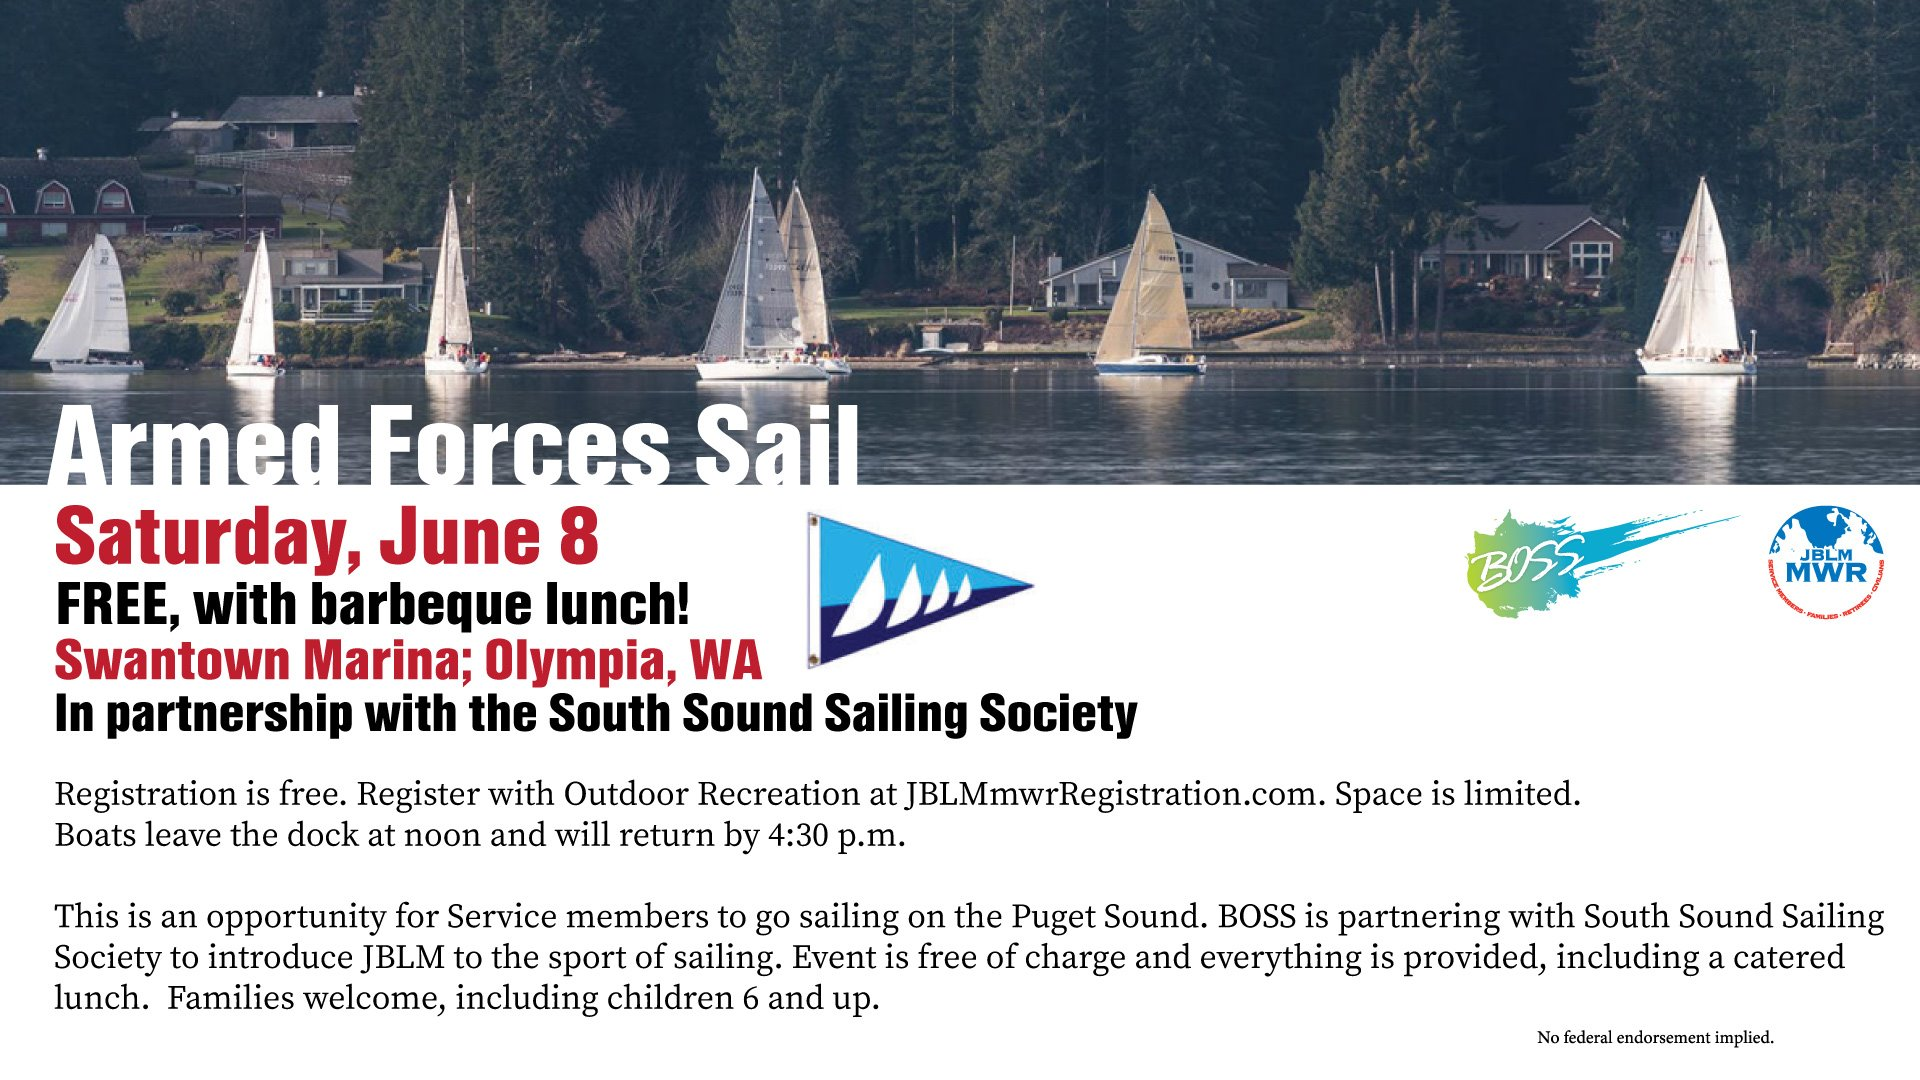 Armed Forces Sail